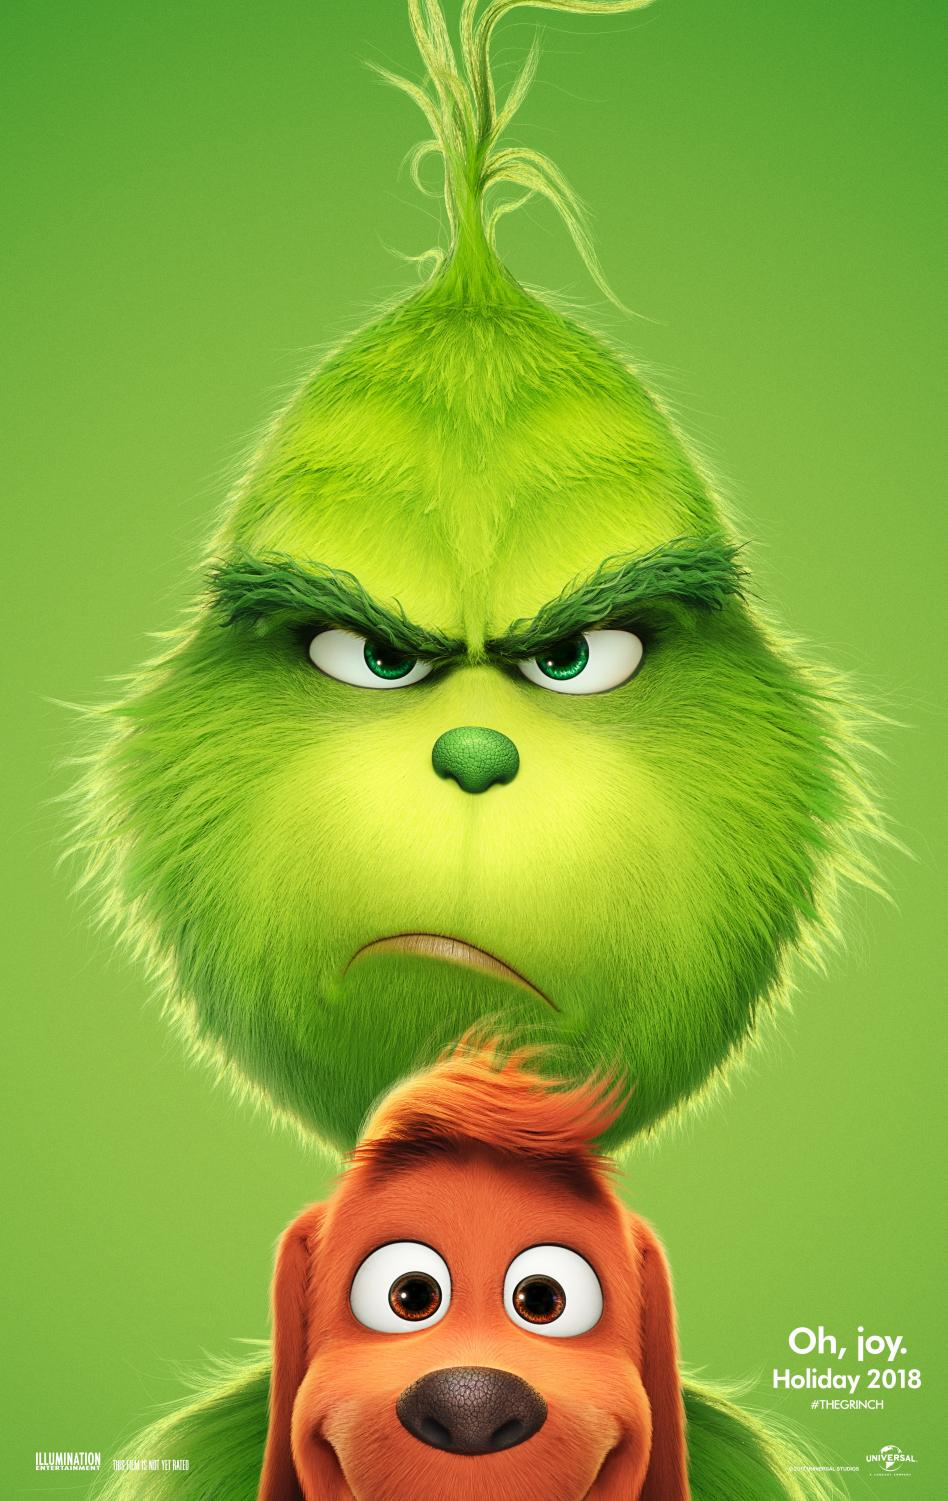 Benedict Cumberbatch voices the Grinch in Dr. Seuss' How the Grinch Stole Christmas.